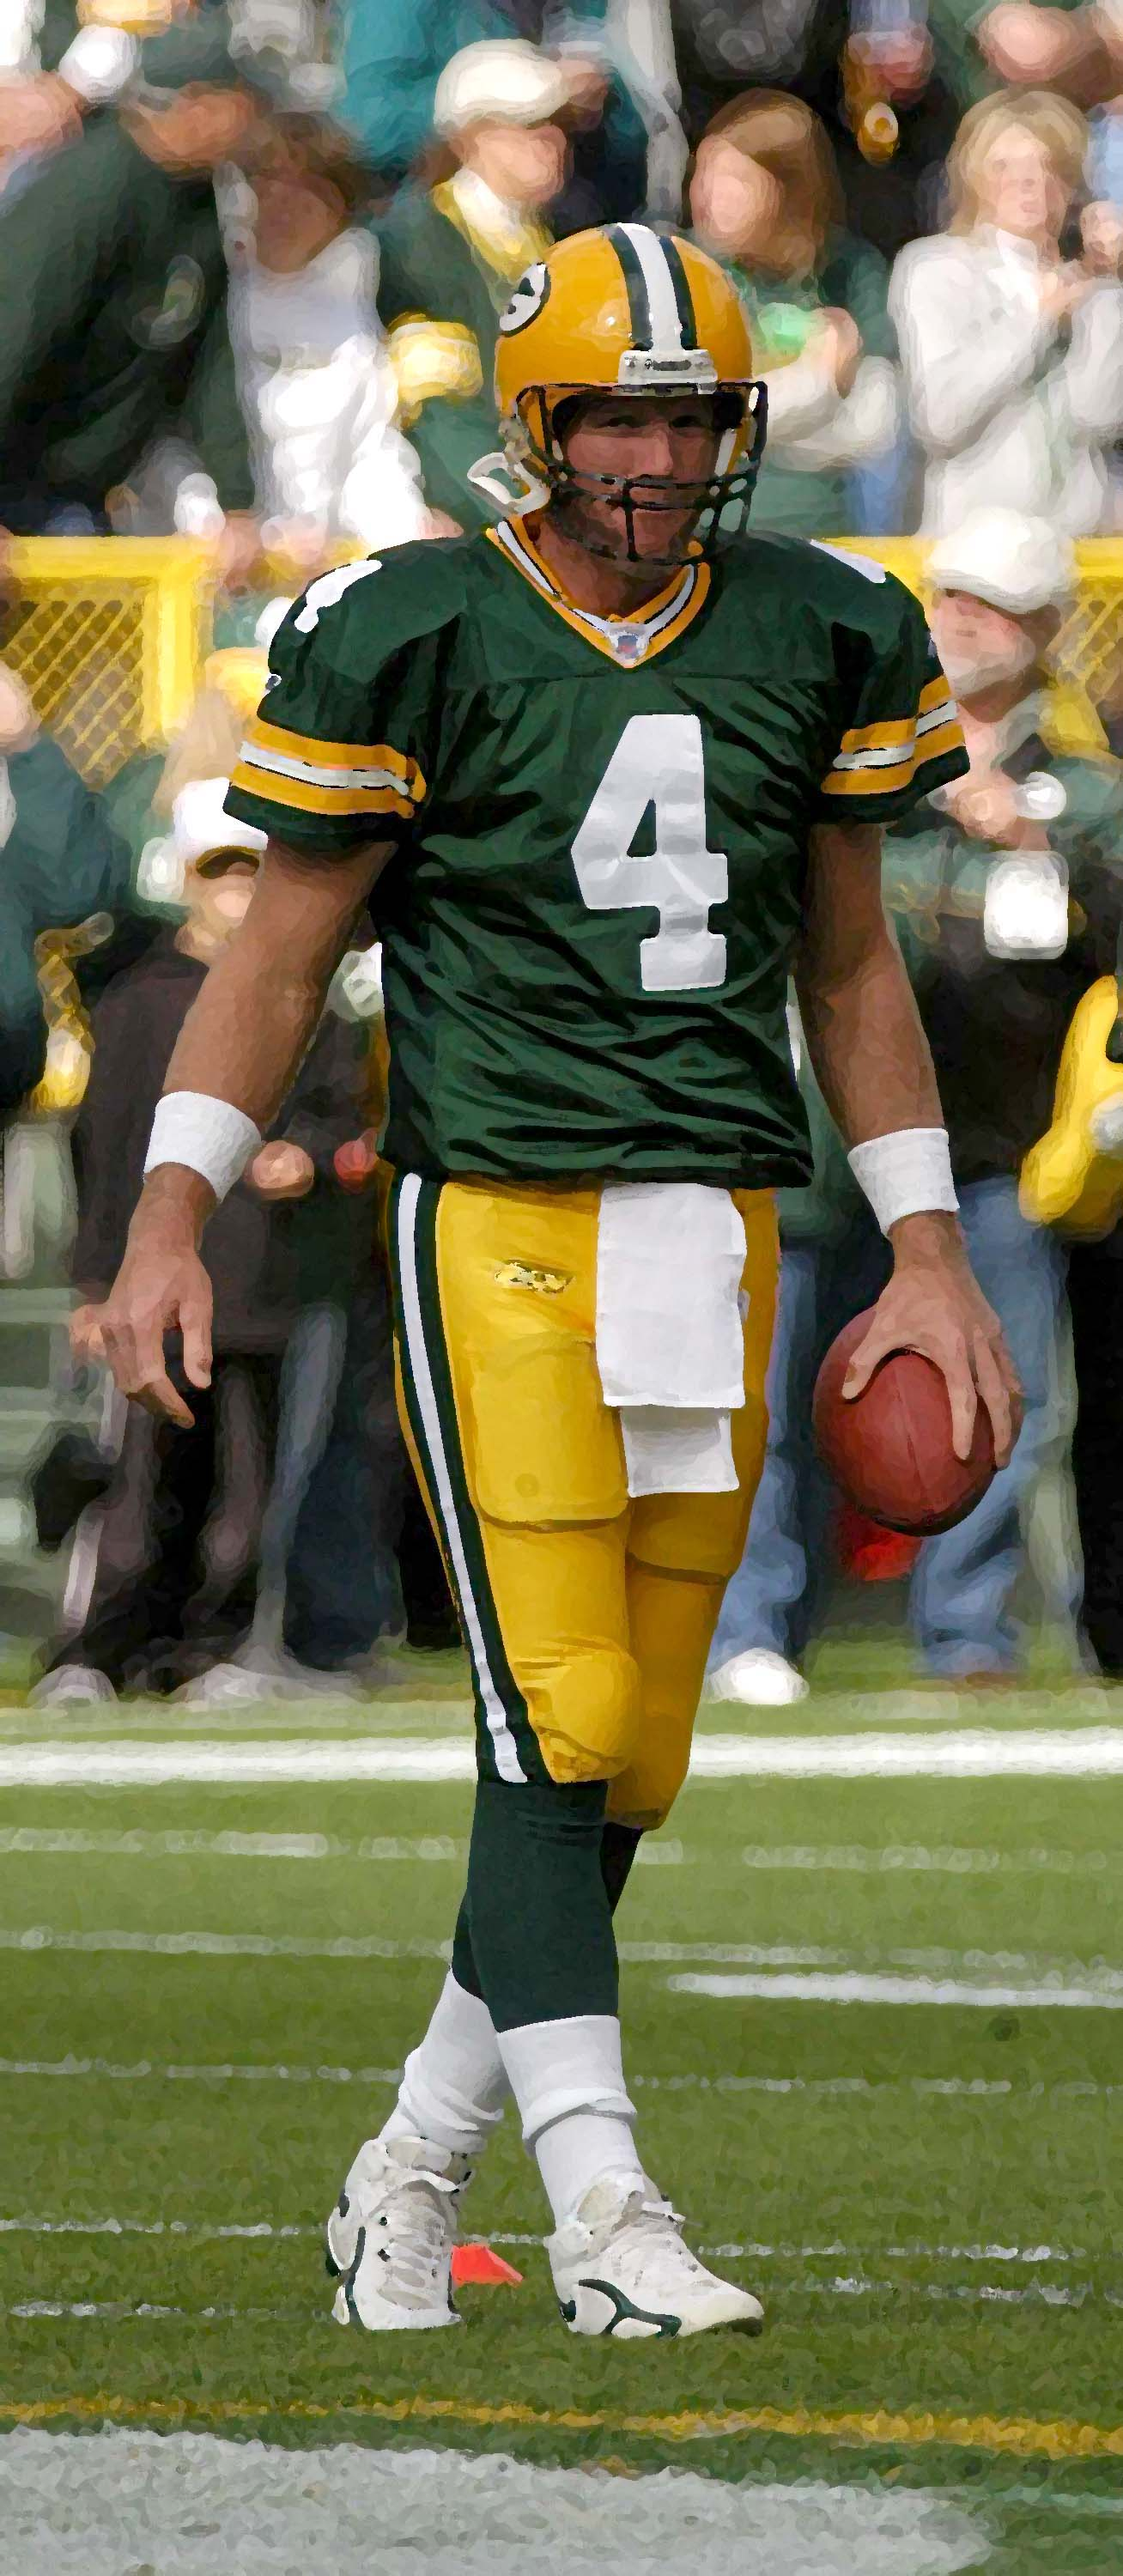 Brett Favre led the Green Bay Packers to a win in Super Bowl XXXI. Raymond T. Rivard photograph